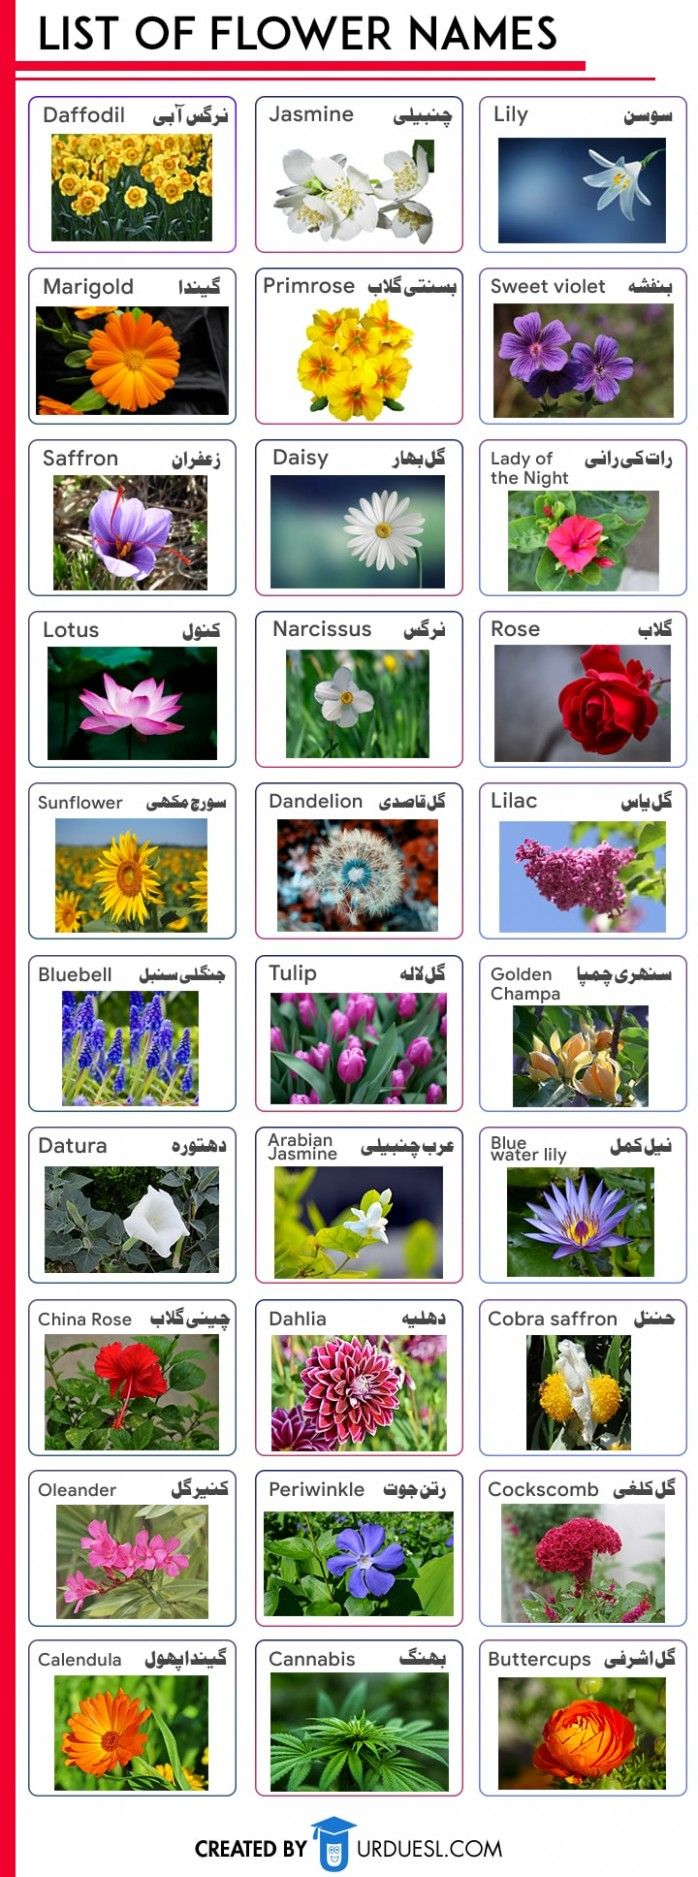 16 Common Myths About Dandelion Flower Name In Urdu In 2020 Flowers Name In English Flower Names Indian Flower Names